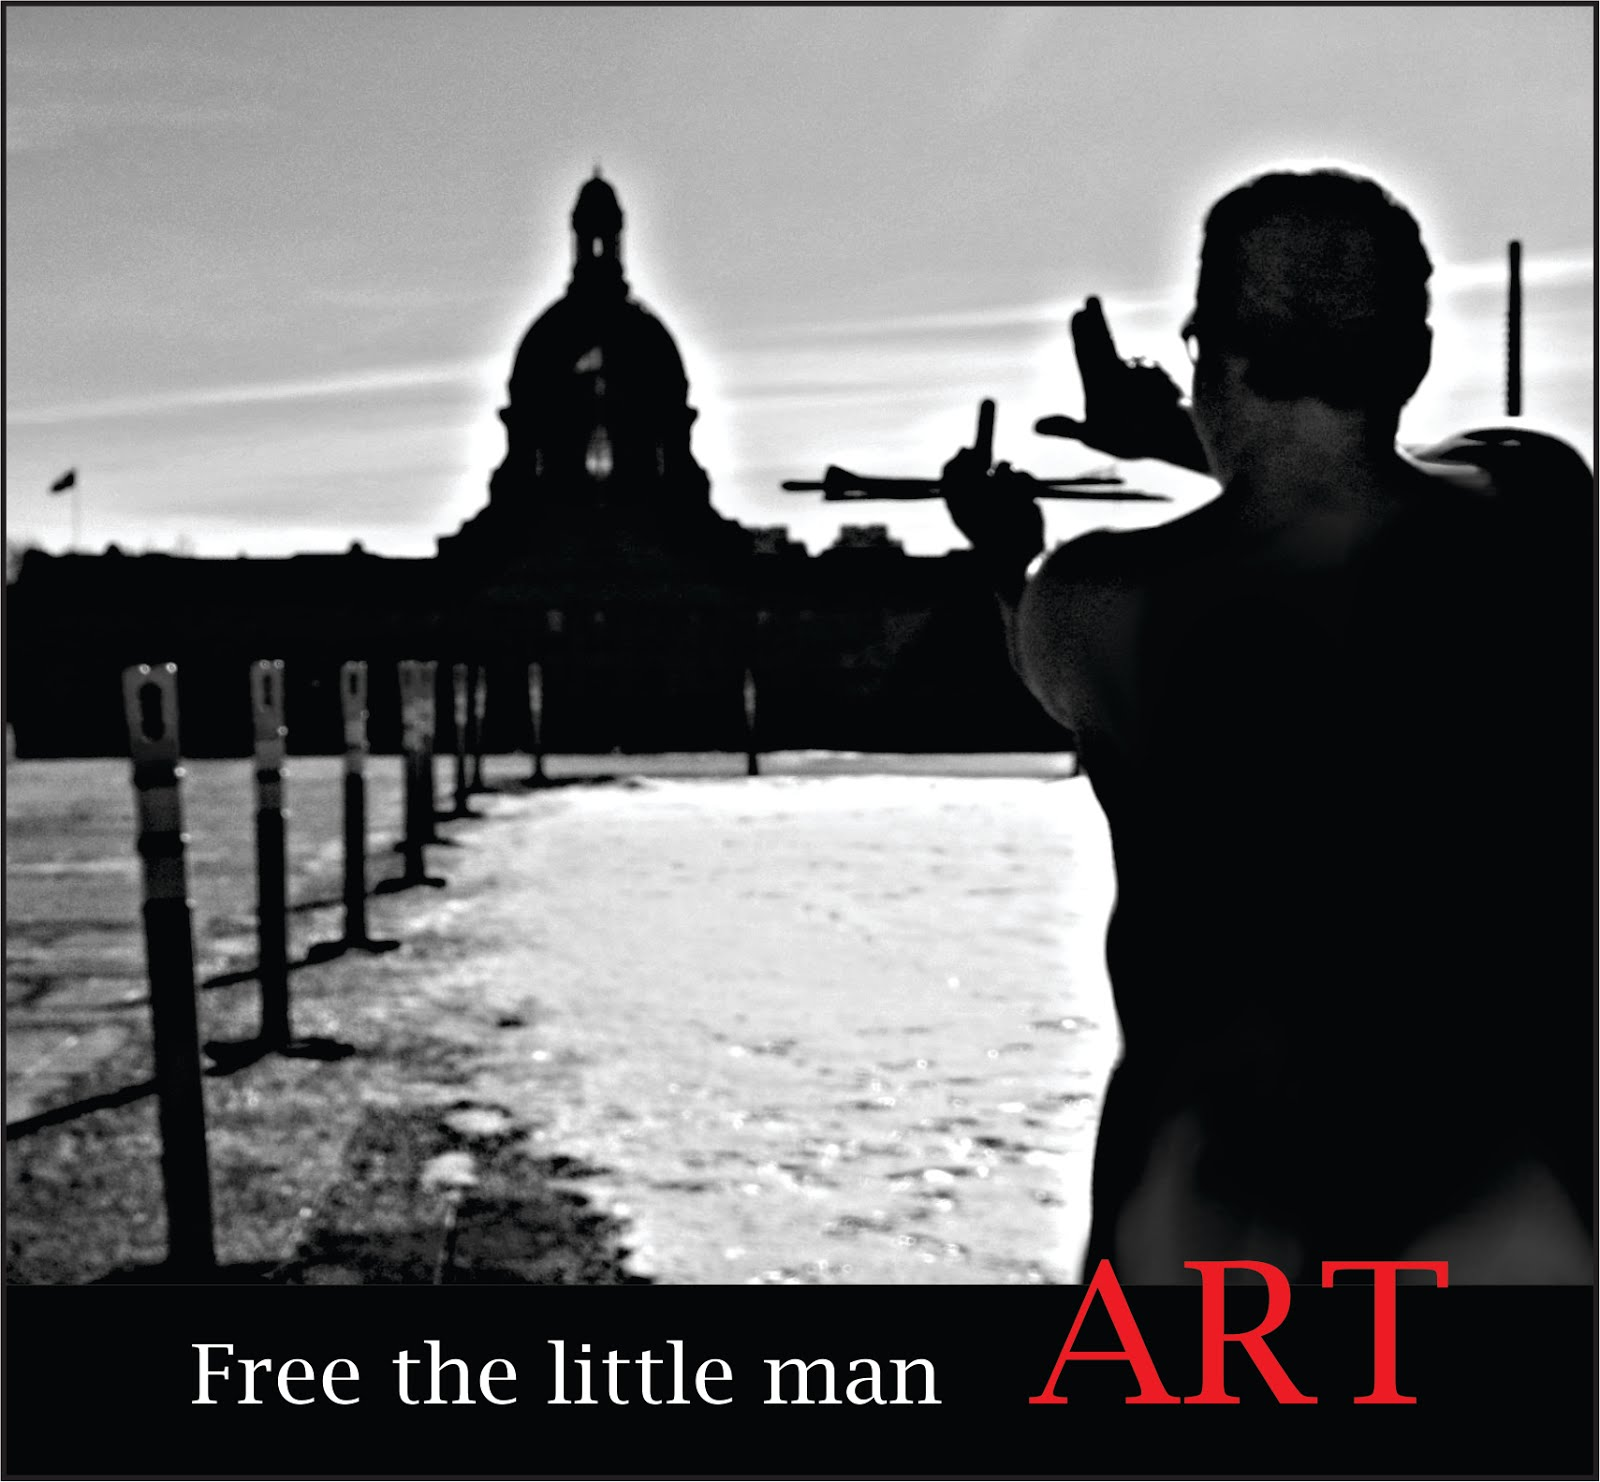 Art is freedom - Free Press Not